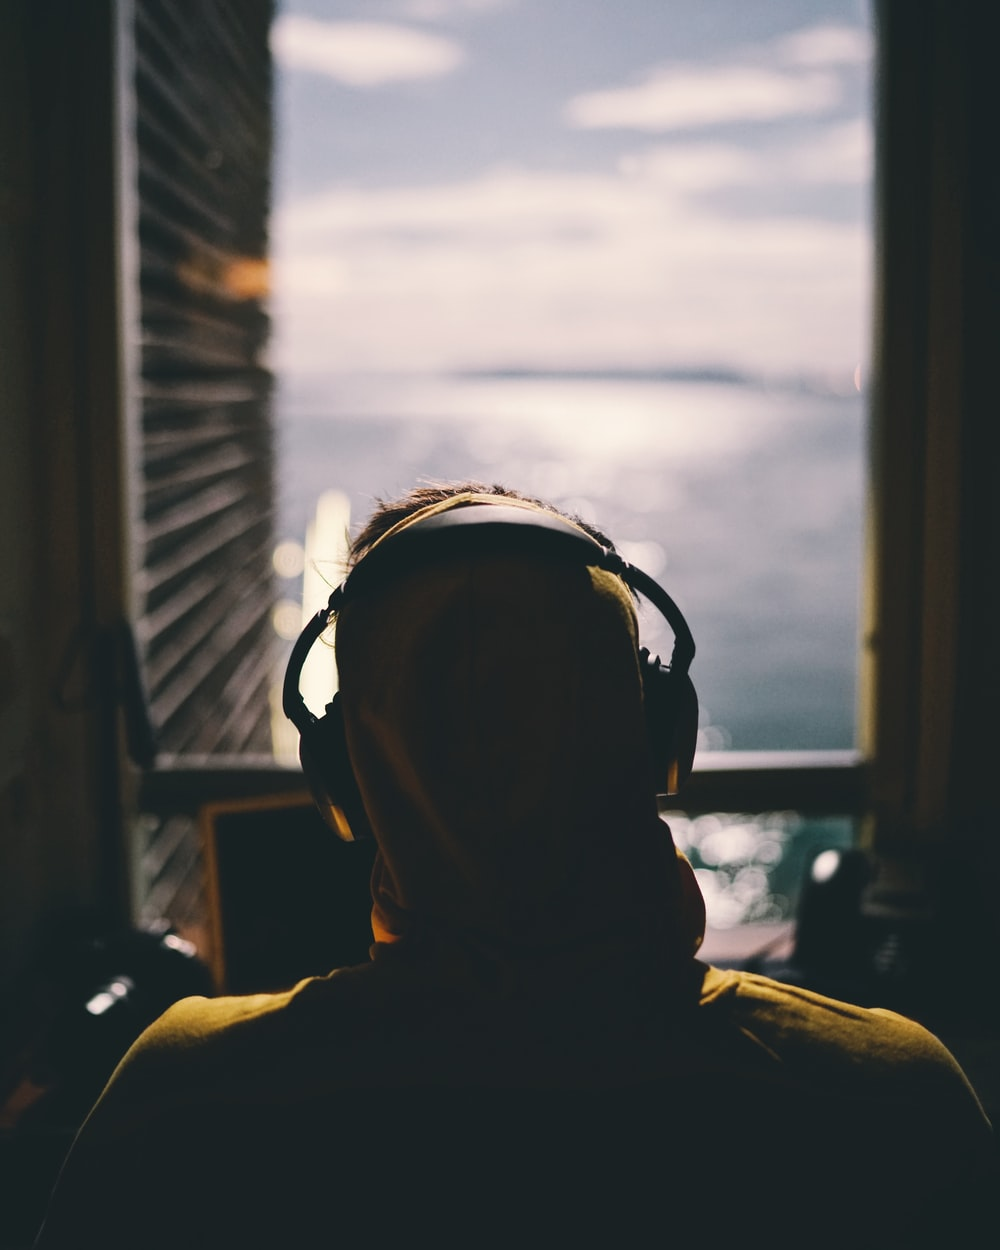 tilt-shift lens photography of person wearing headphones facing body of water through window of a dark room